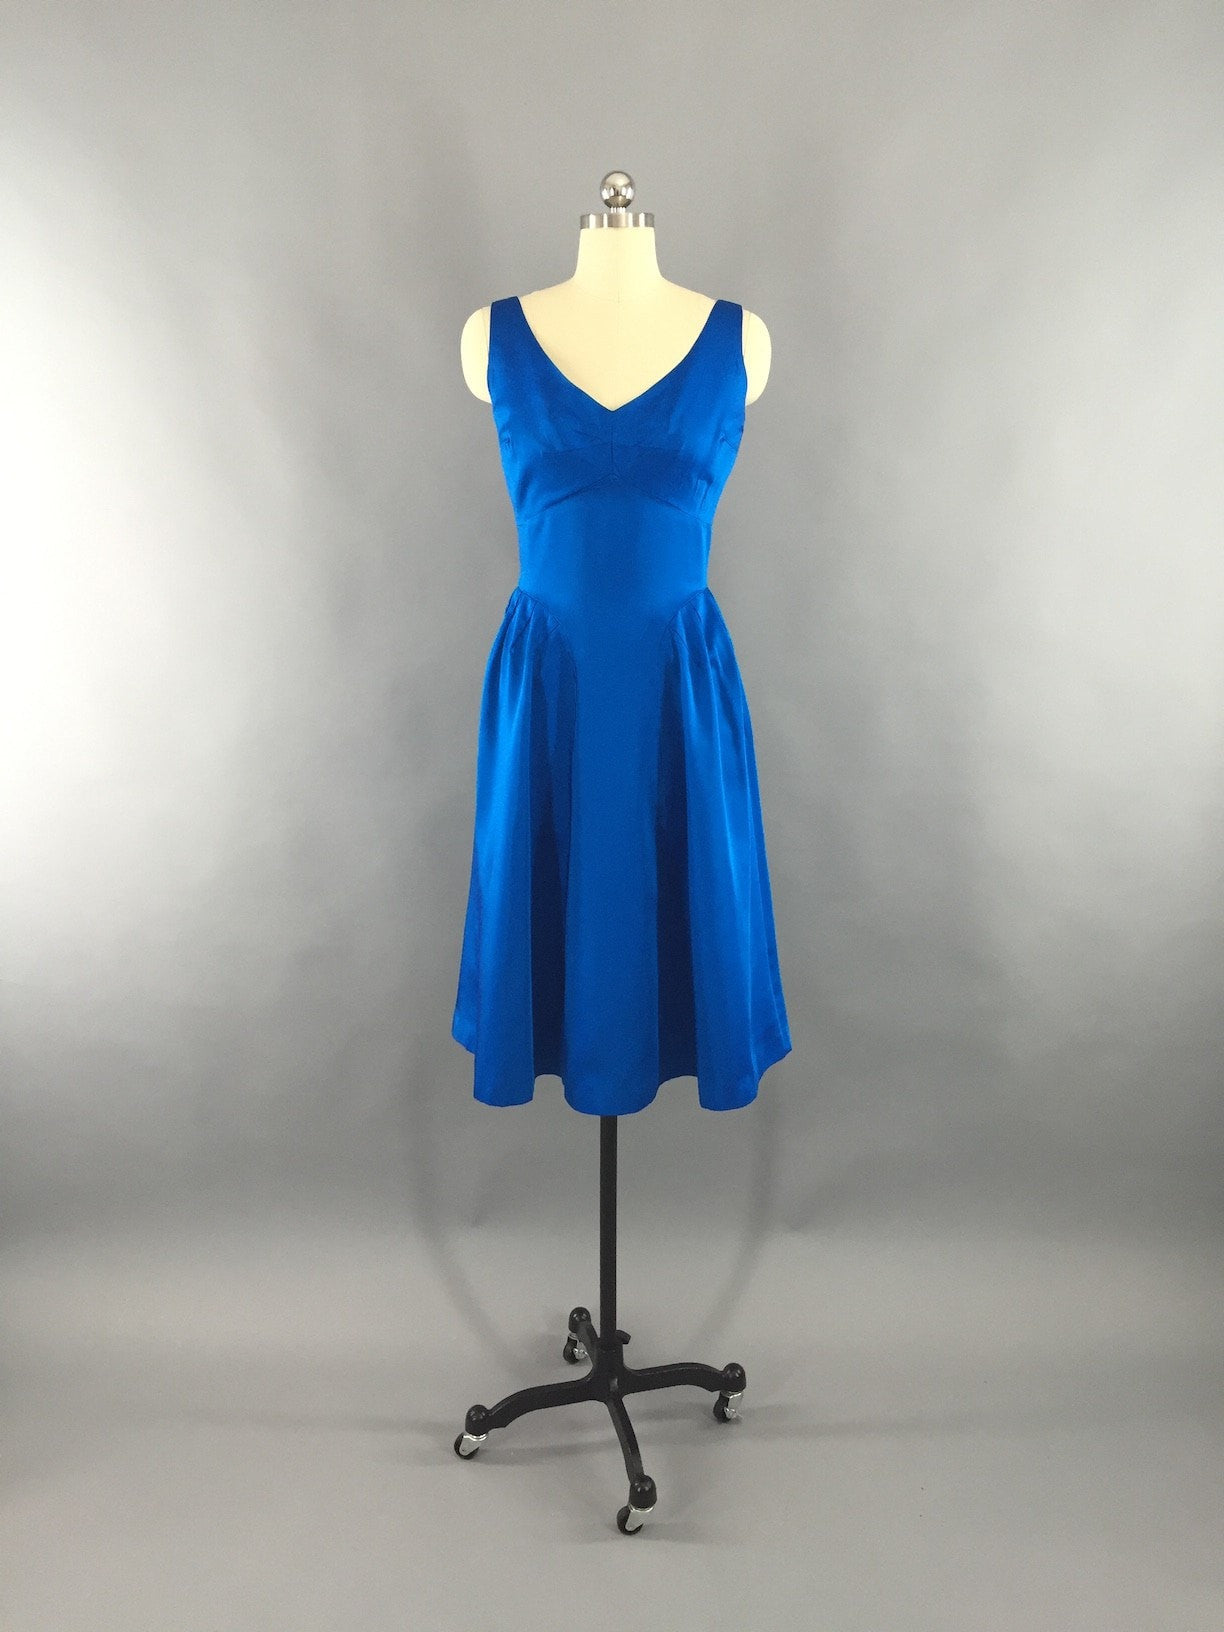 Vintage 1950s - 1960s Electric Blue Matte Satin Party Dress Dress ThisBlueBird